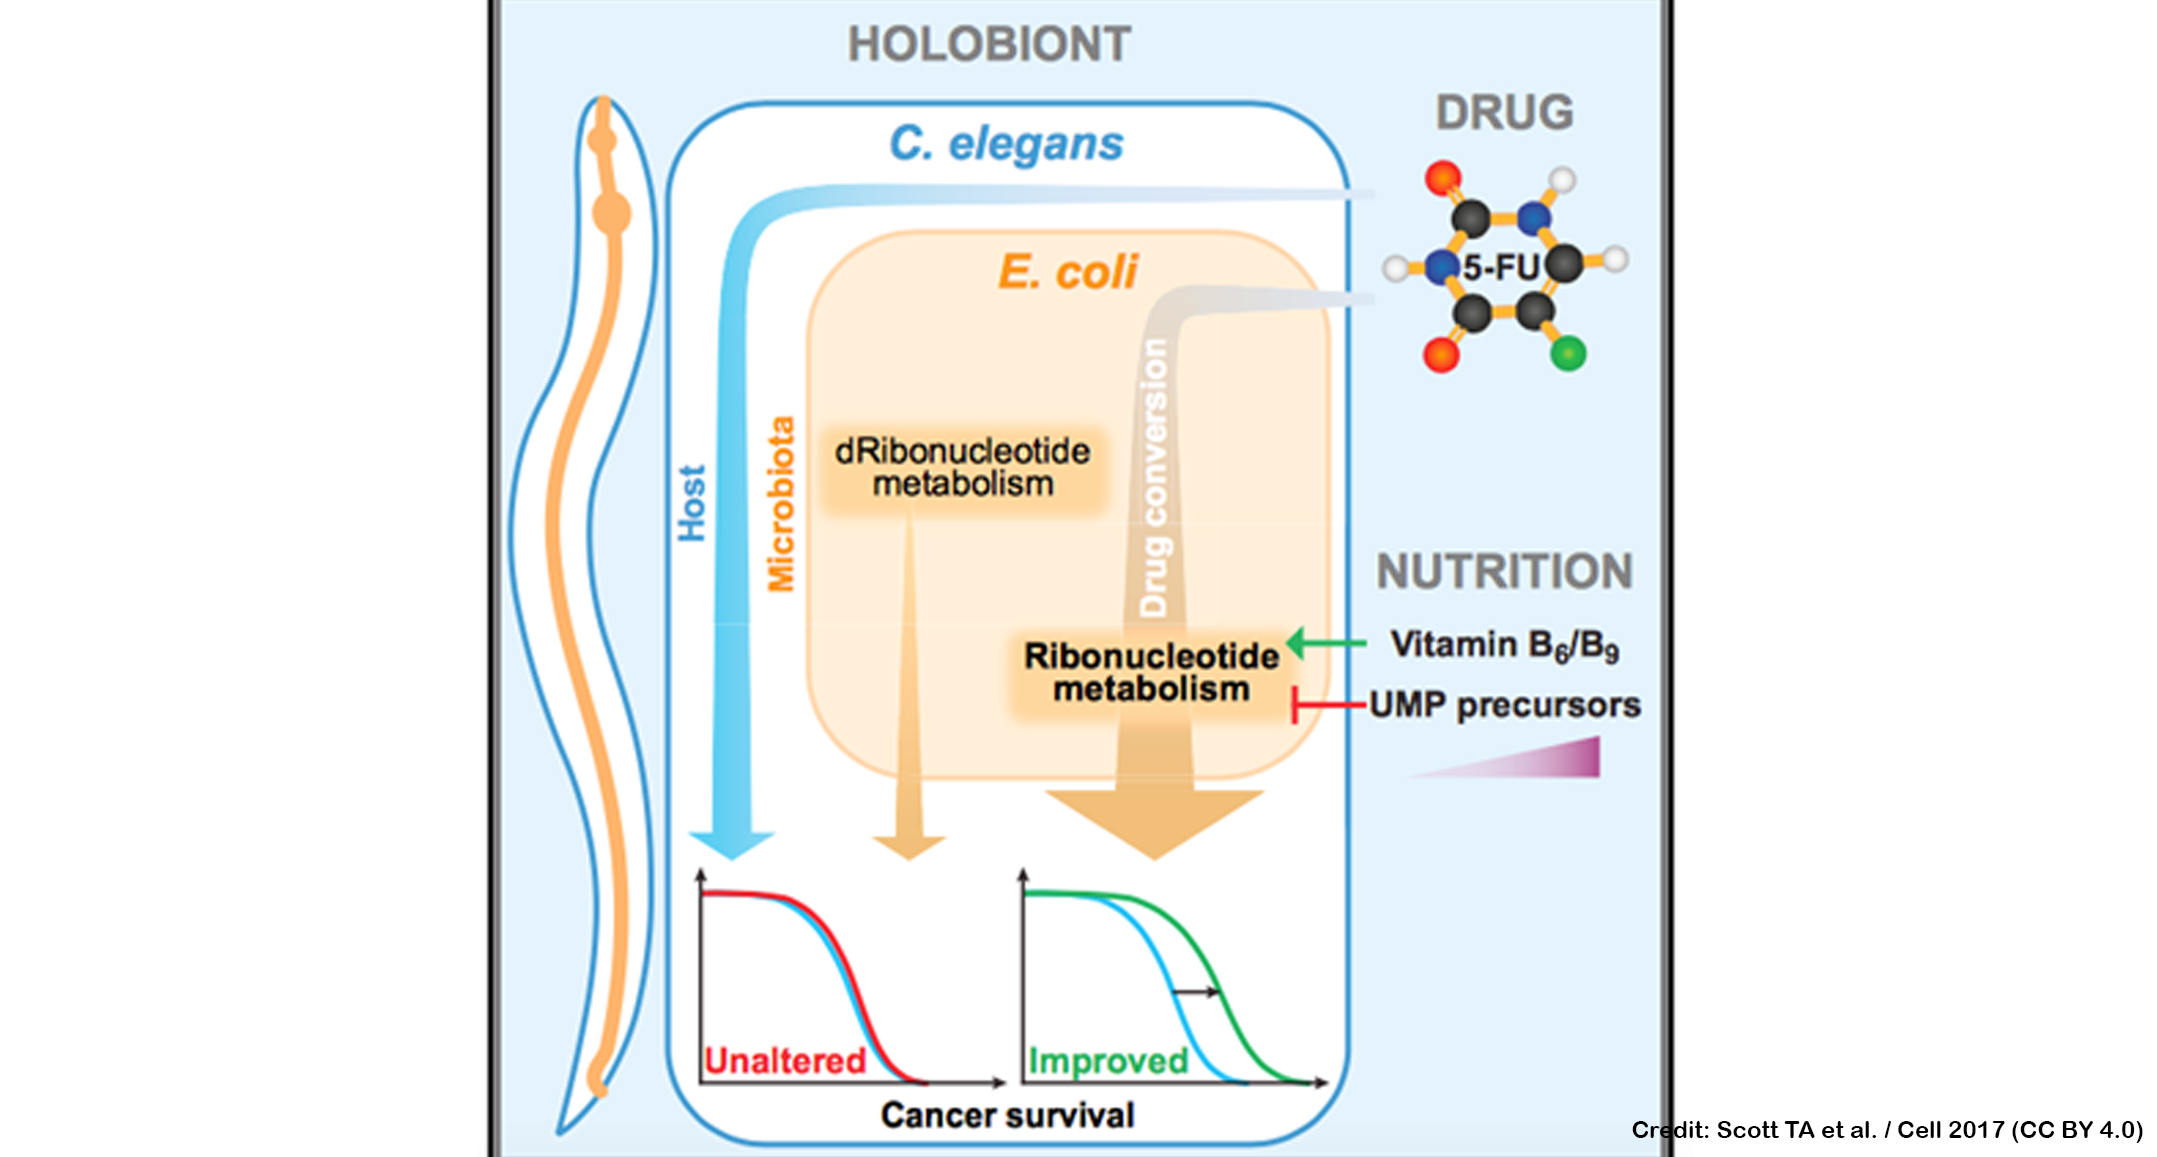 New insights on how the microbiome may dictate the efficacy